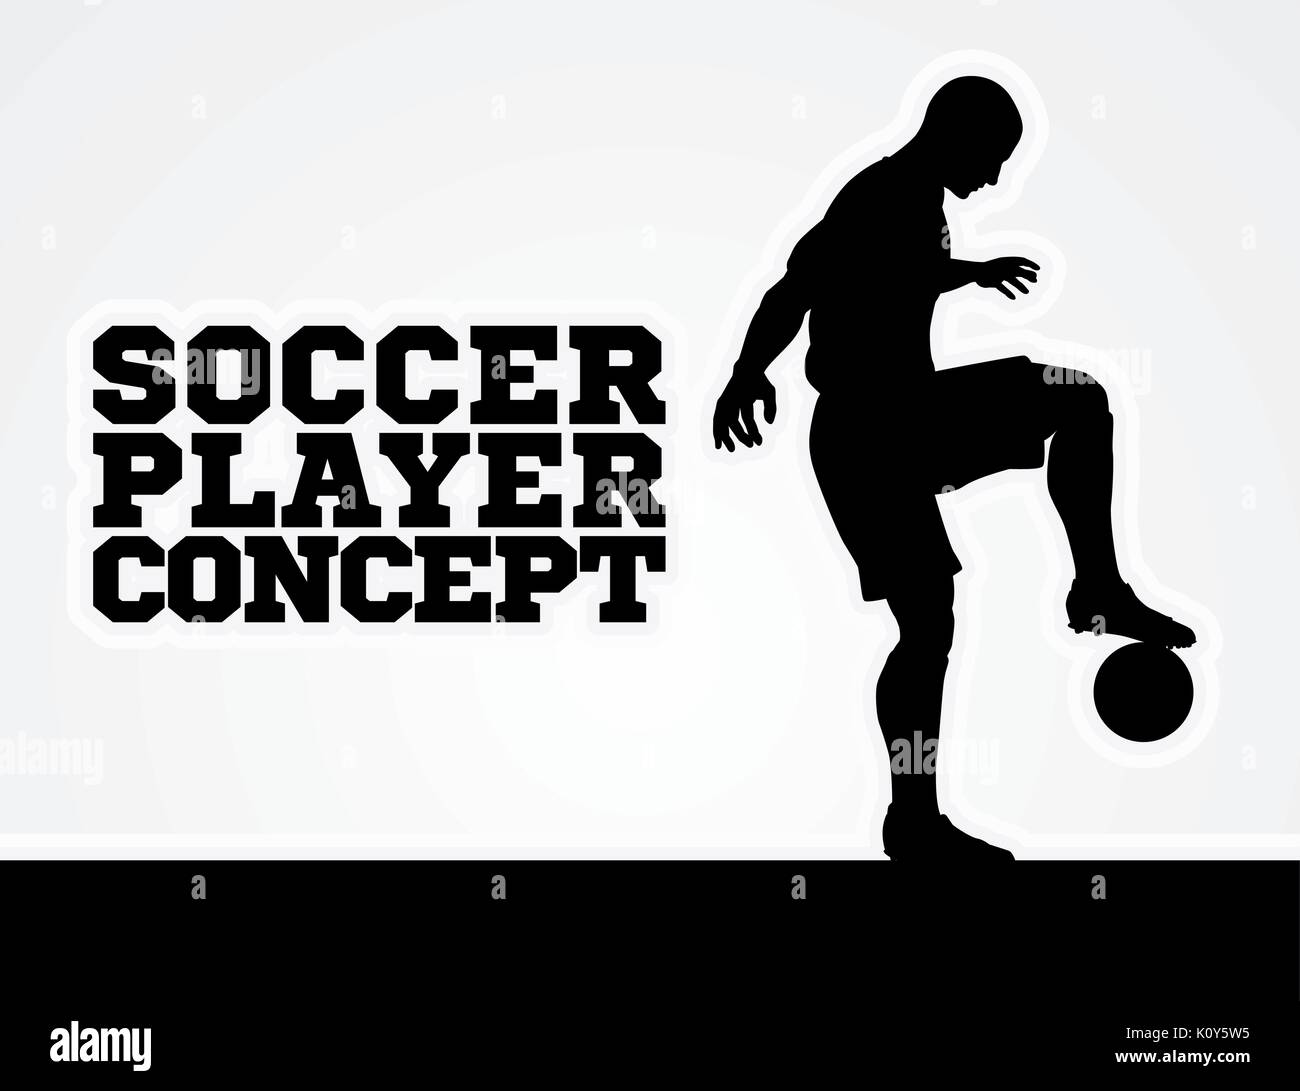 Soccer Football Player Concept Silhouette Stock Vector